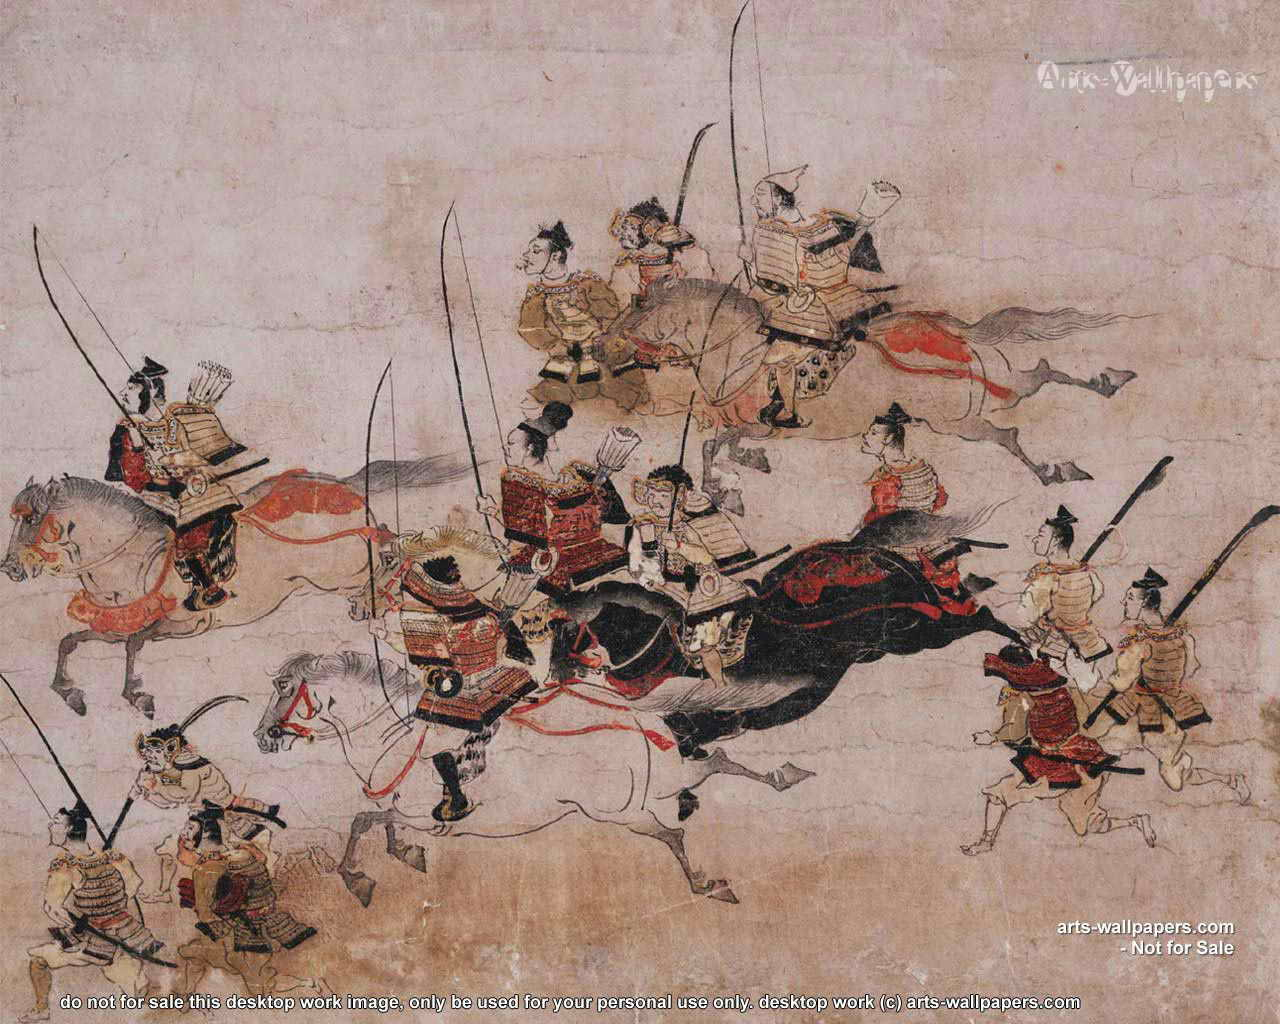 japanese art wallpapers all desktop works by arts wallpapers com 1280x1024